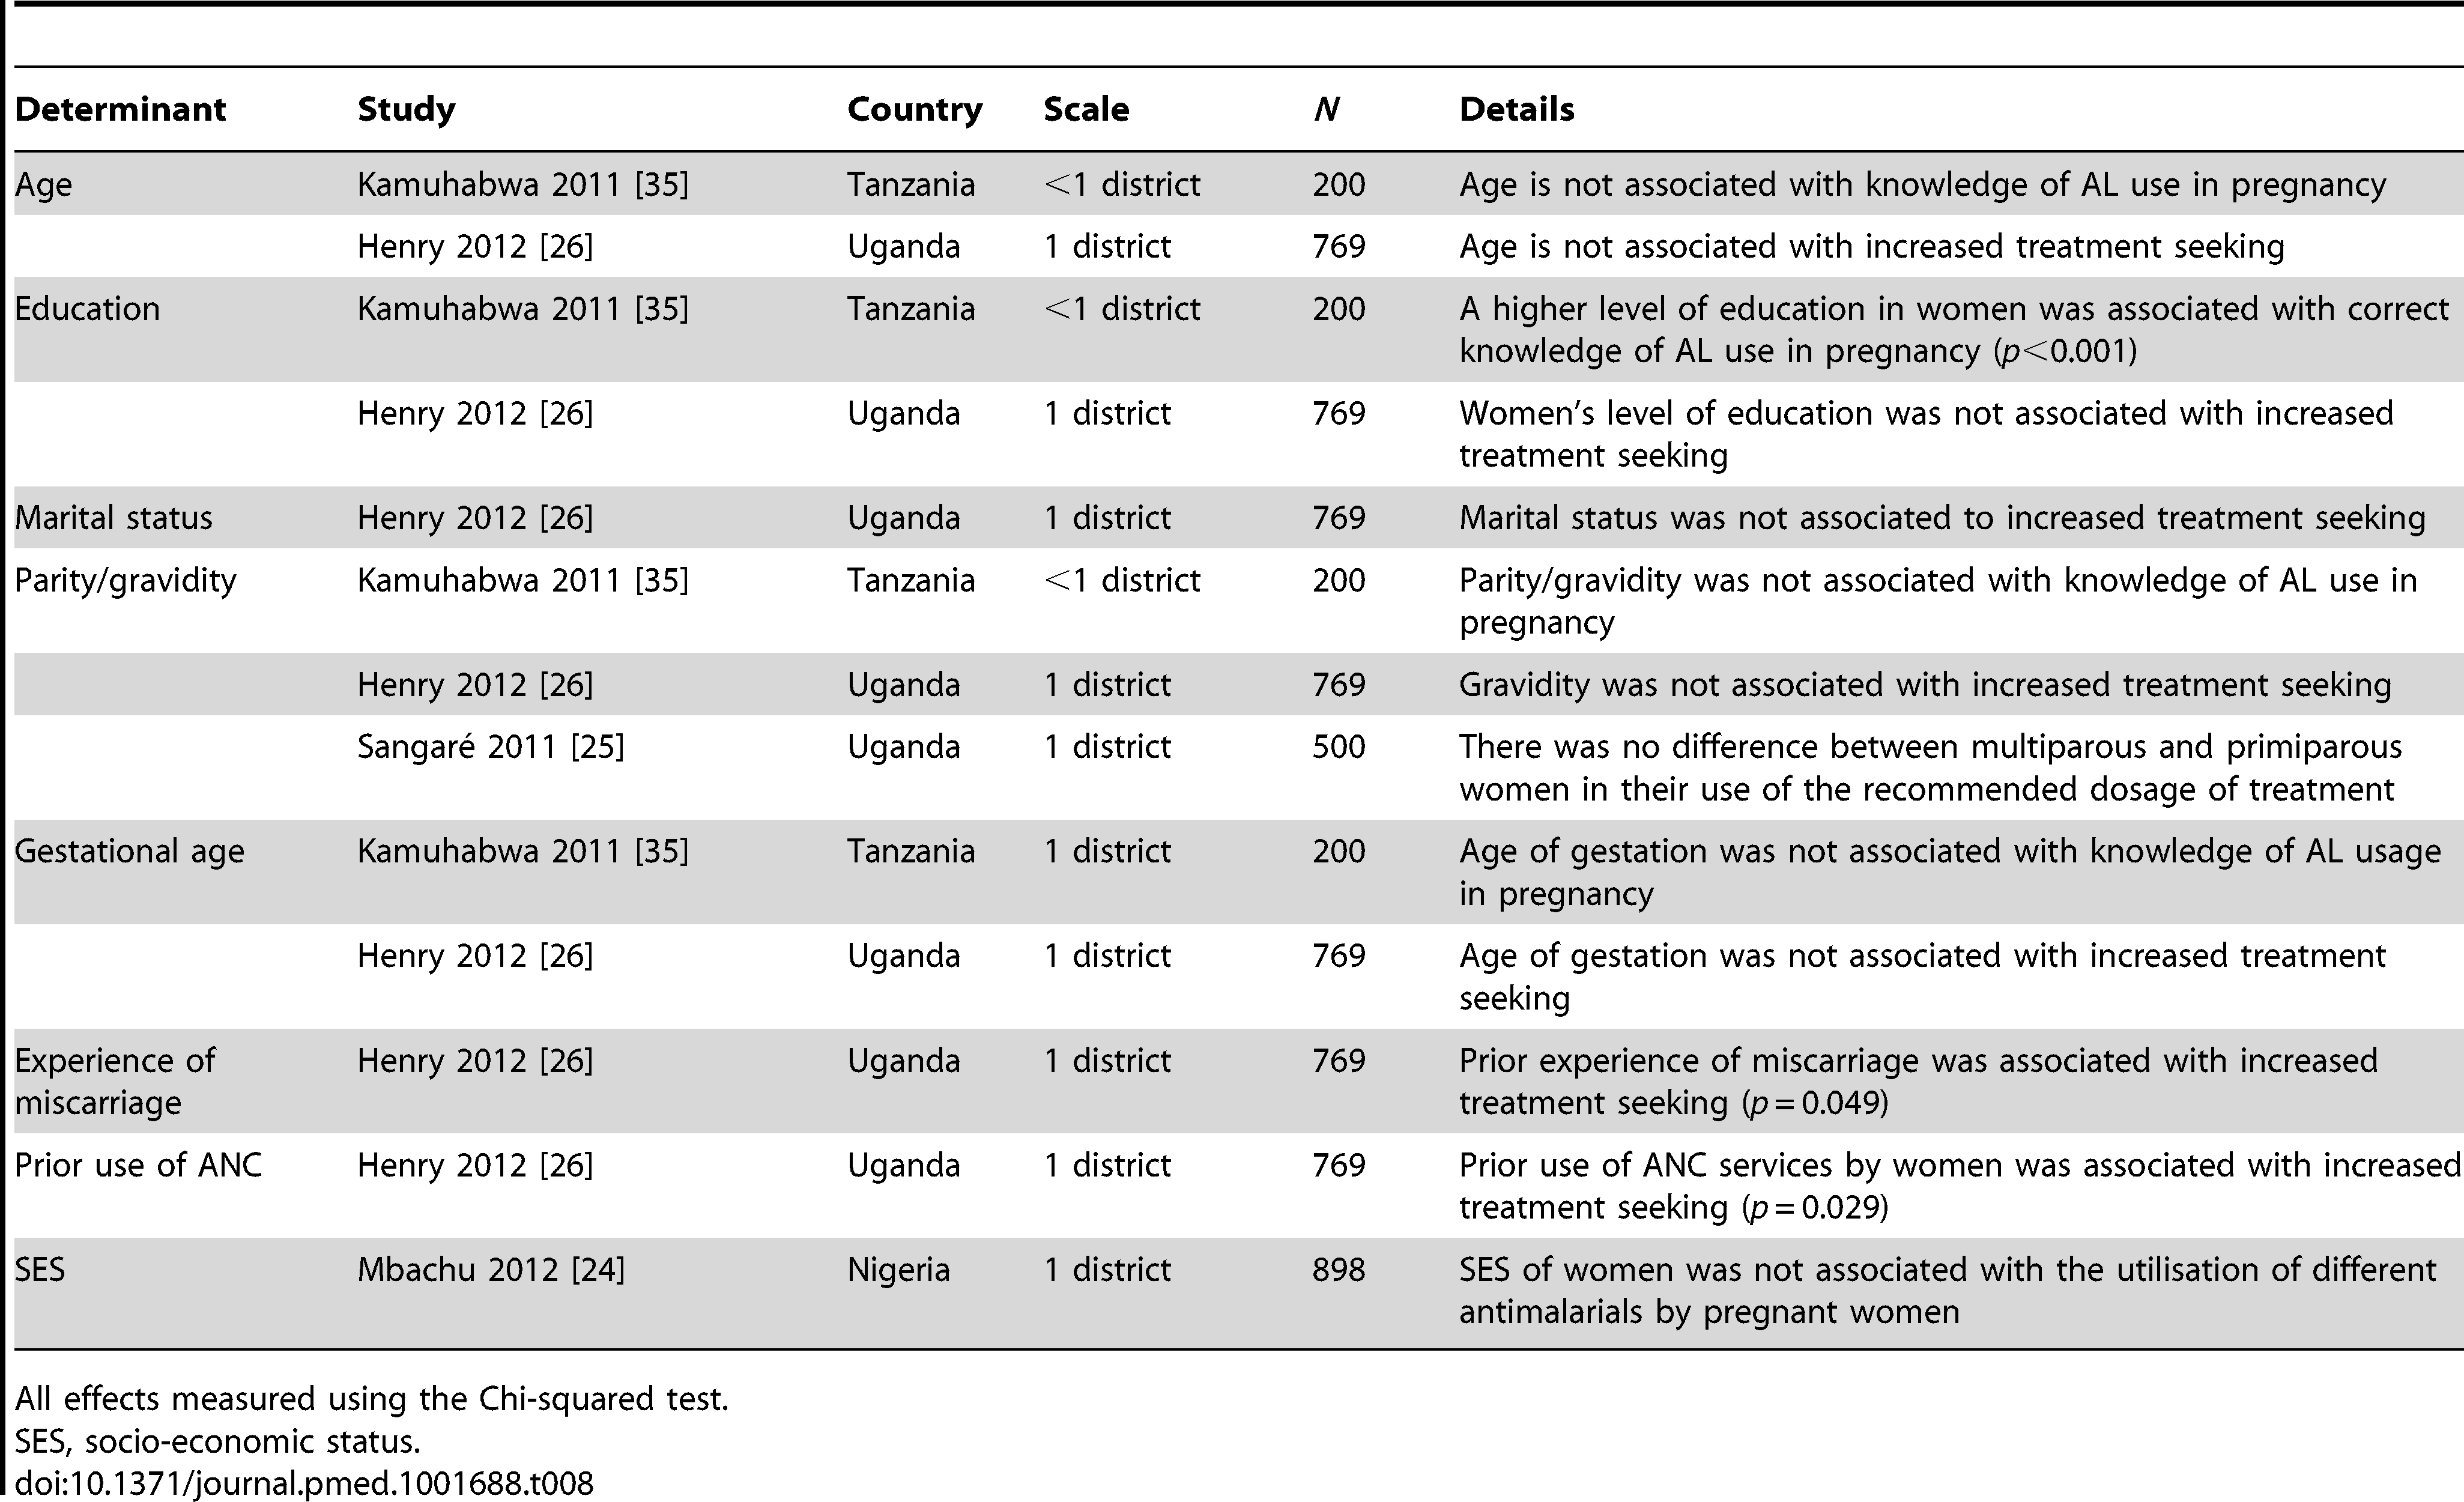 Data on the determinants of treatment-seeking behaviours for malaria in pregnancy by pregnant women.